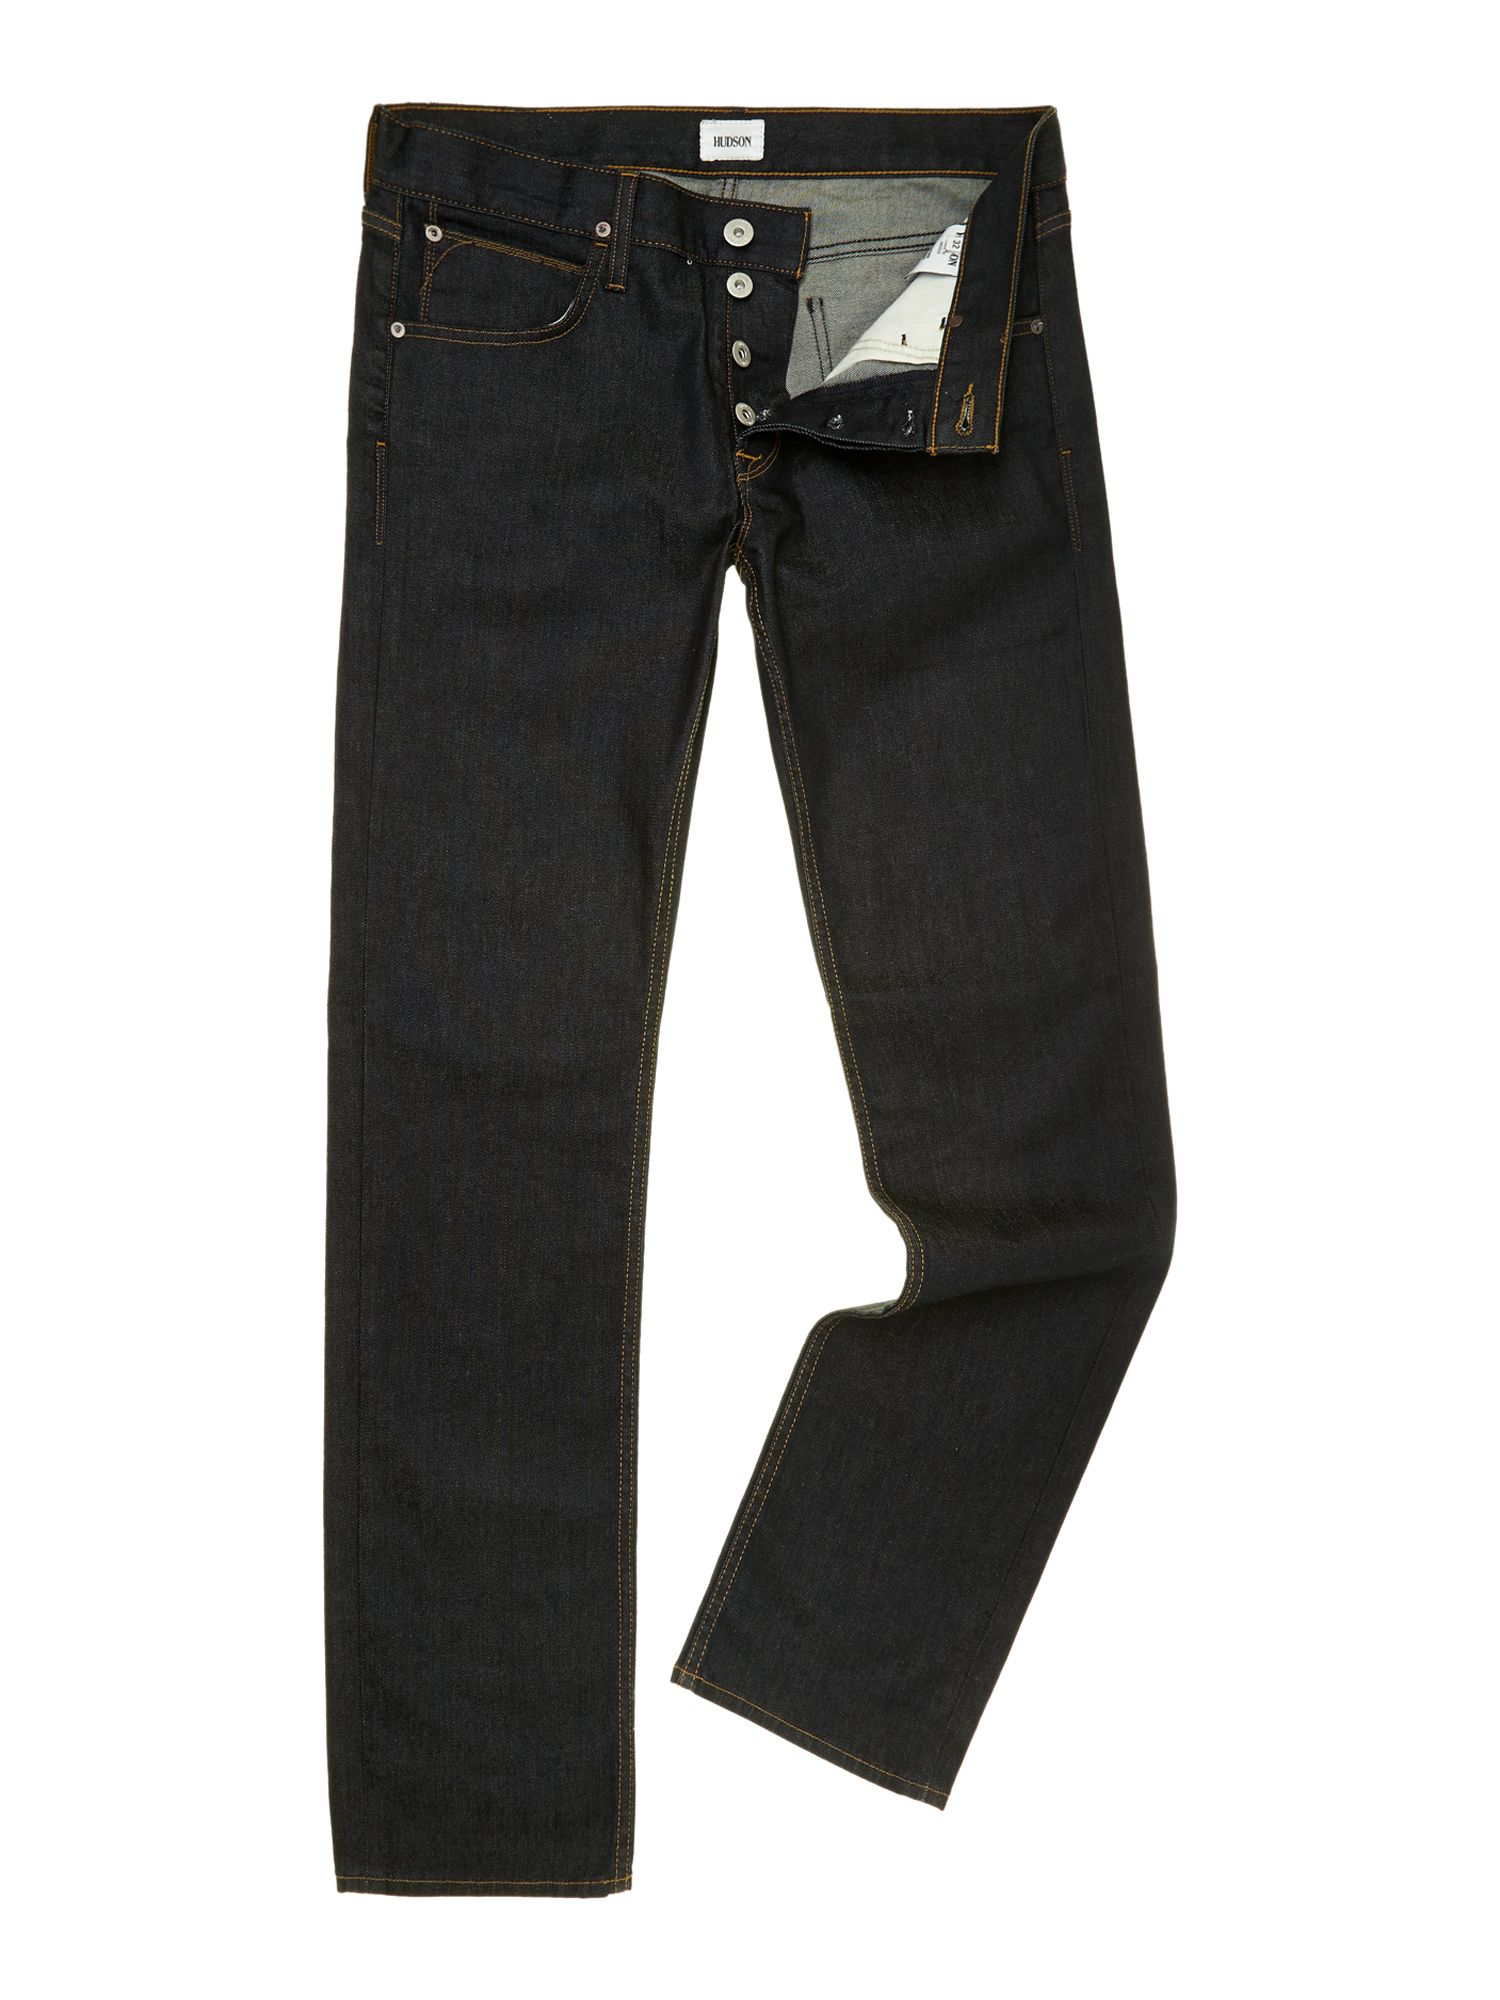 Byron straight leg edges dark wash jeans